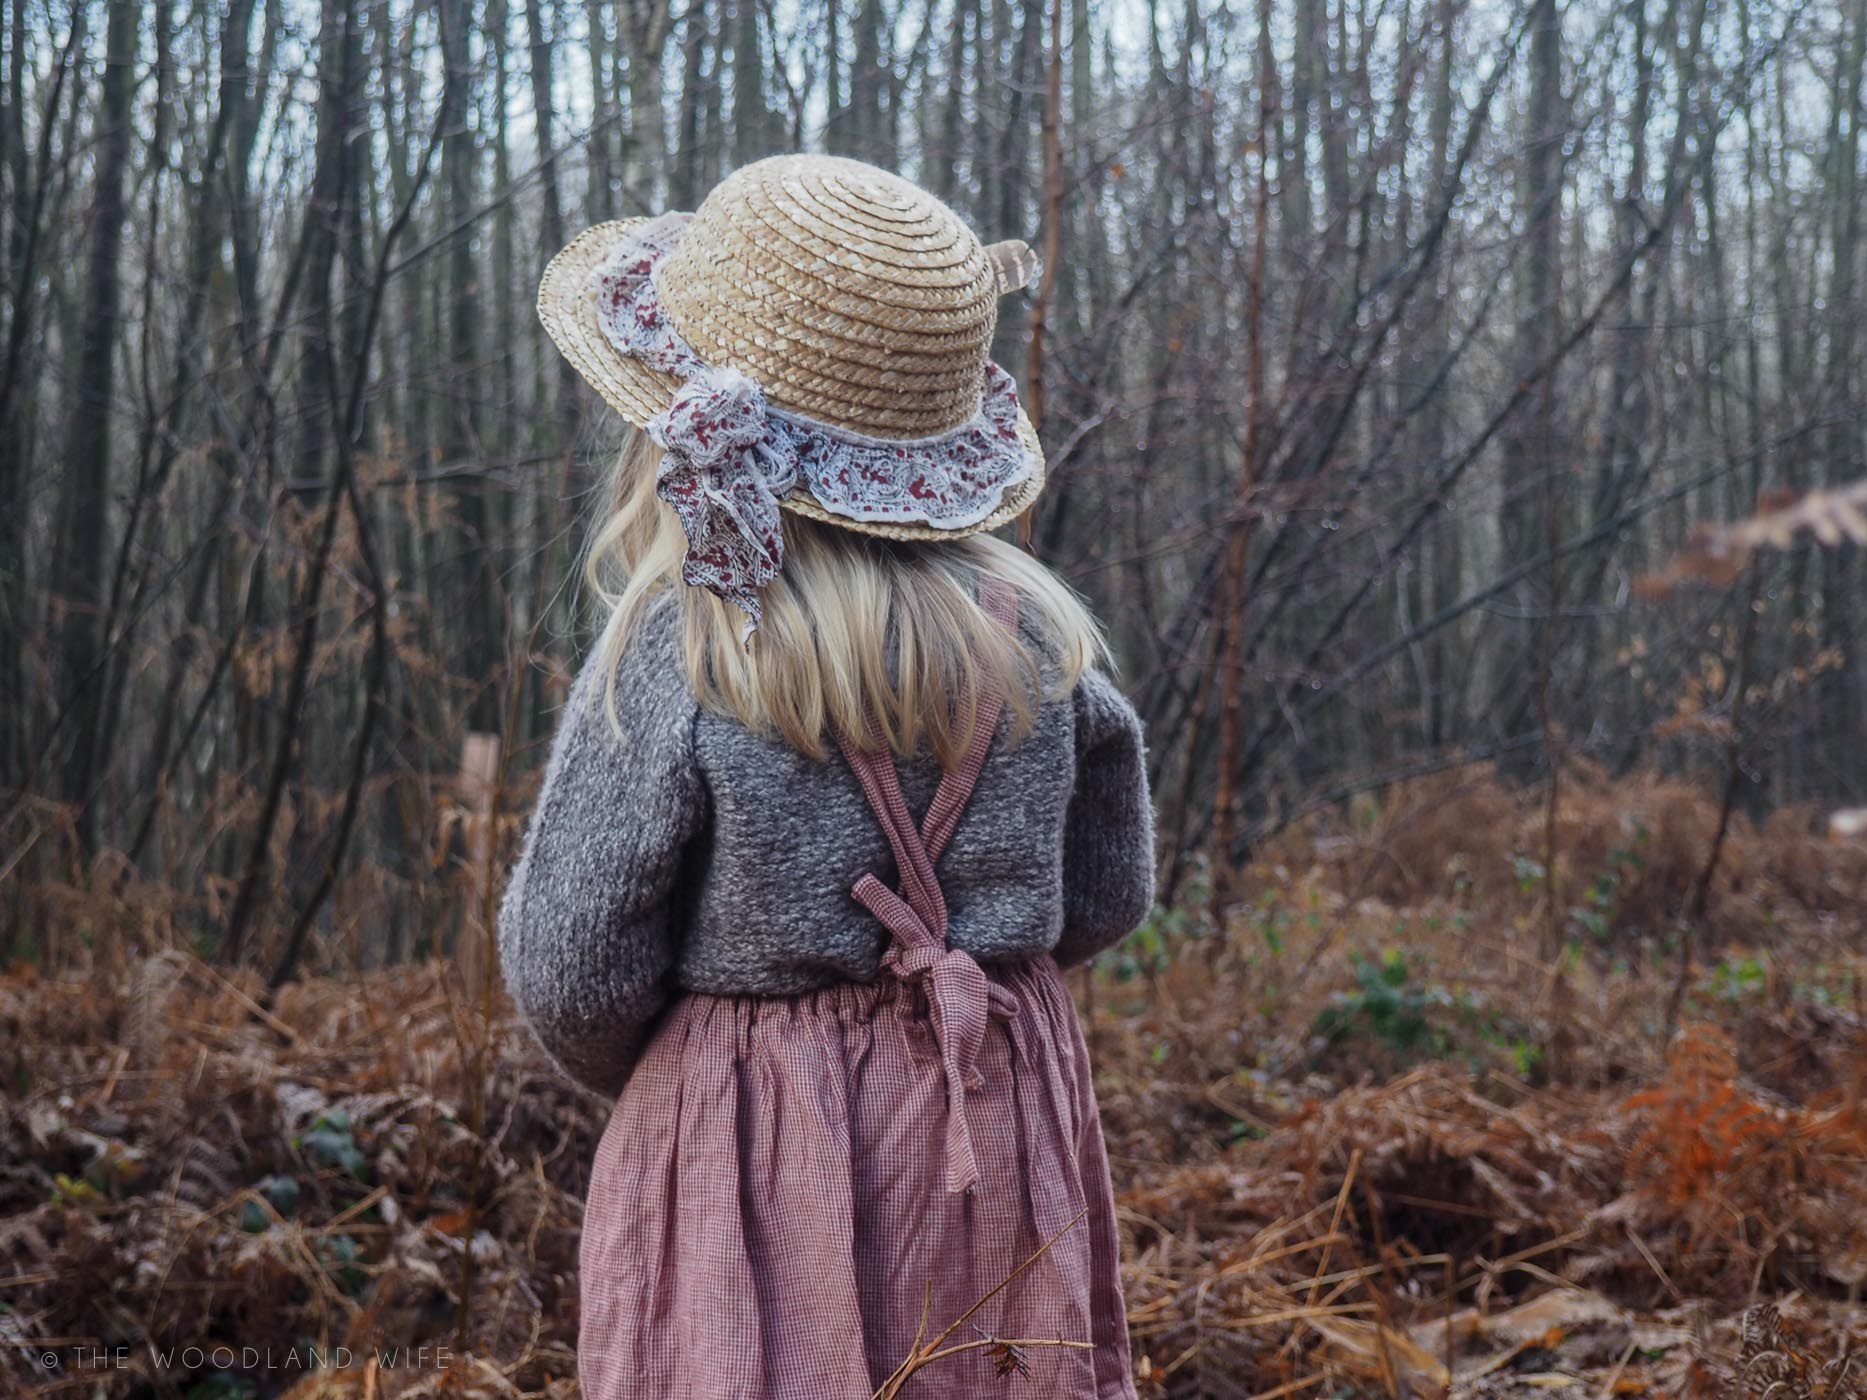 The Woodland Wife - On a bright Winter's Morning - Nellie Quats Pinafore Dress